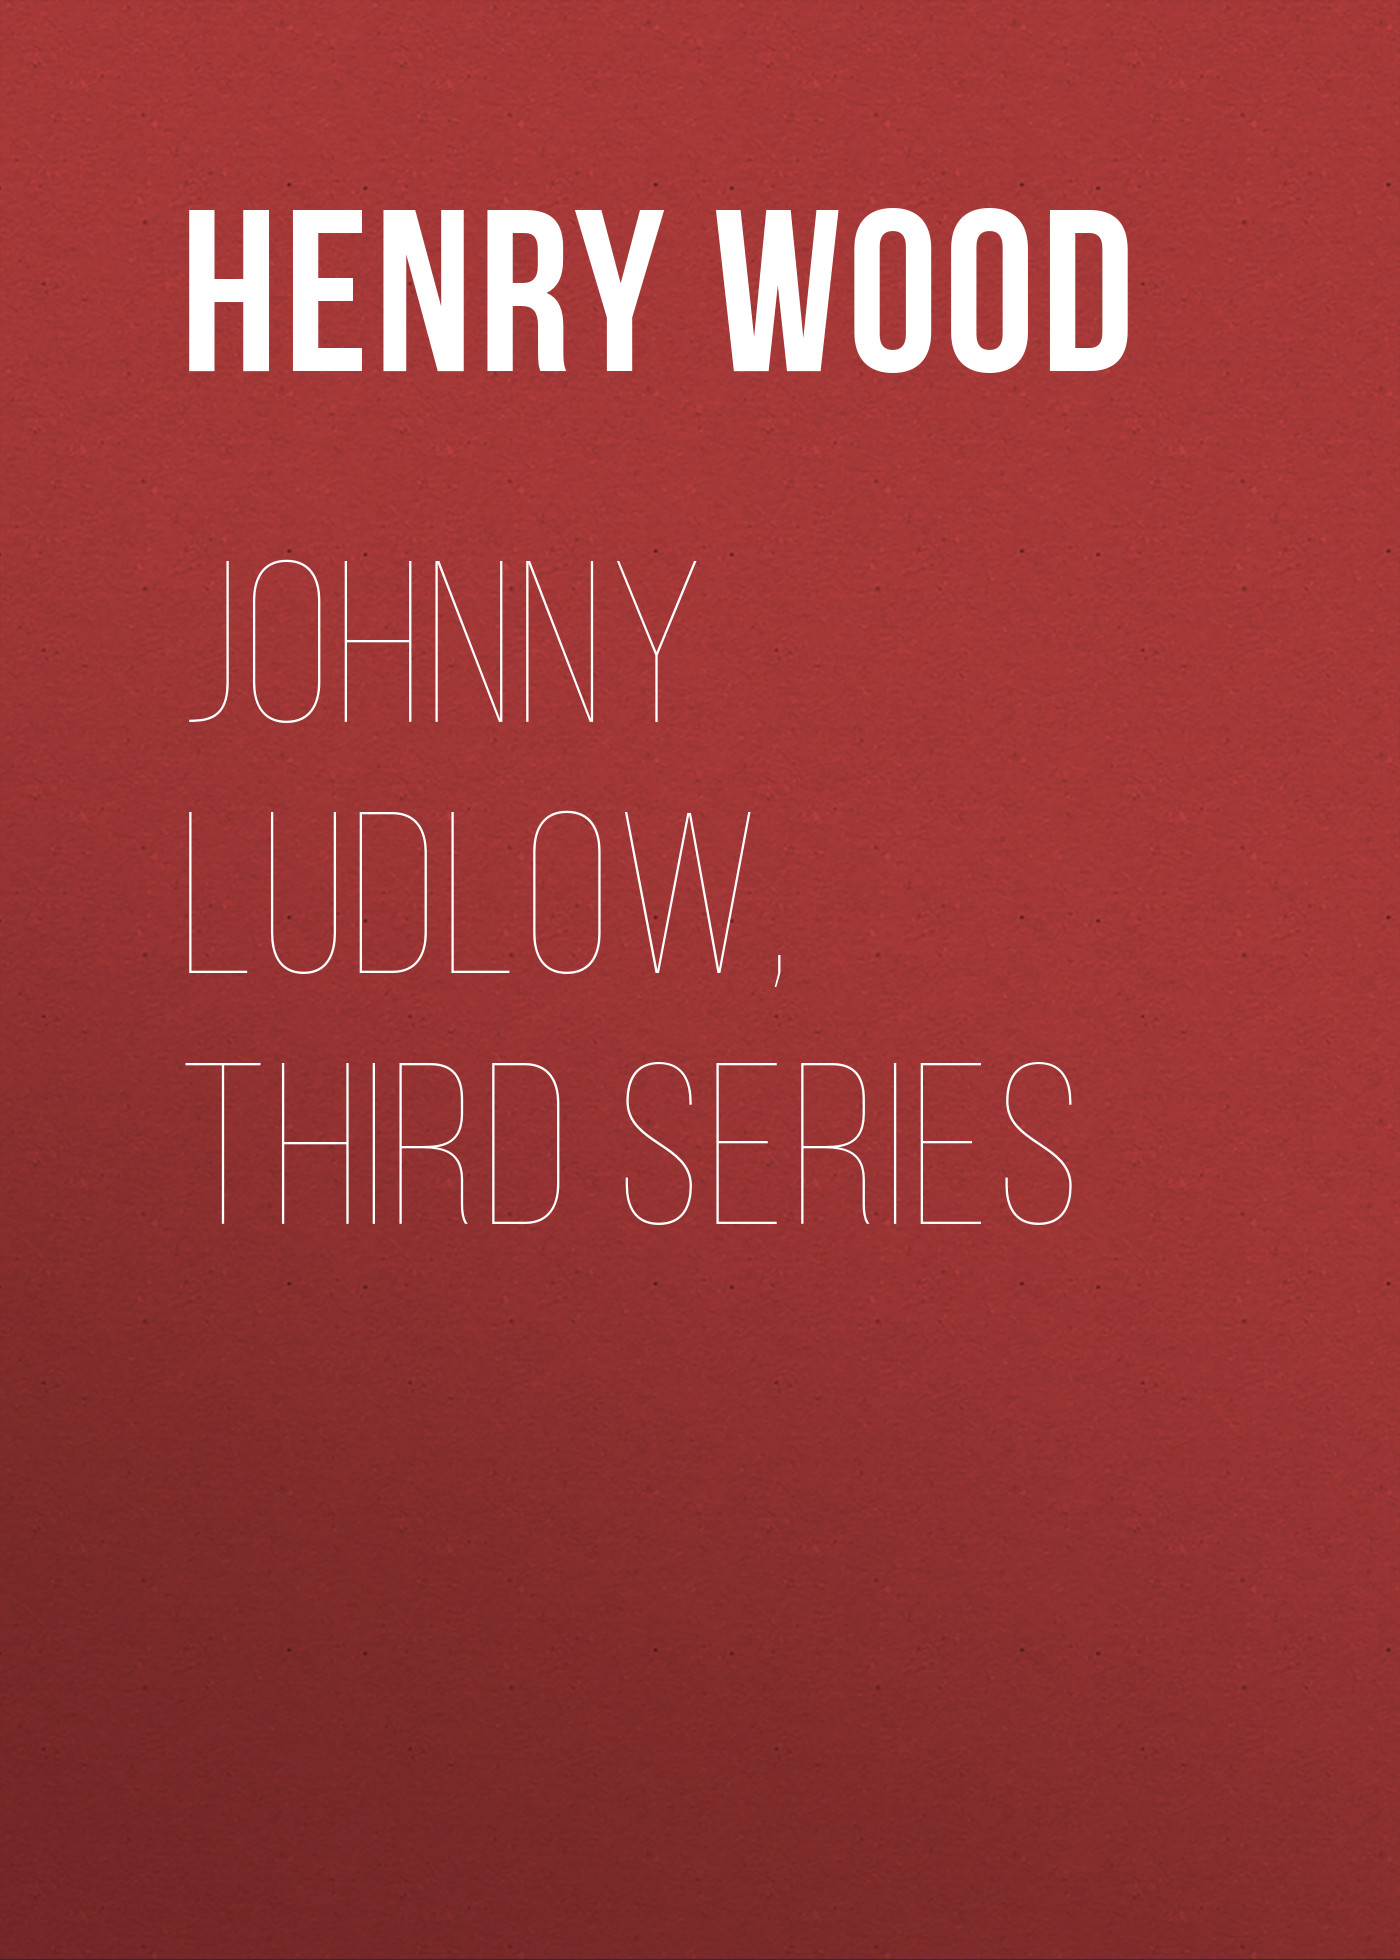 лучшая цена Henry Wood Johnny Ludlow, Third Series